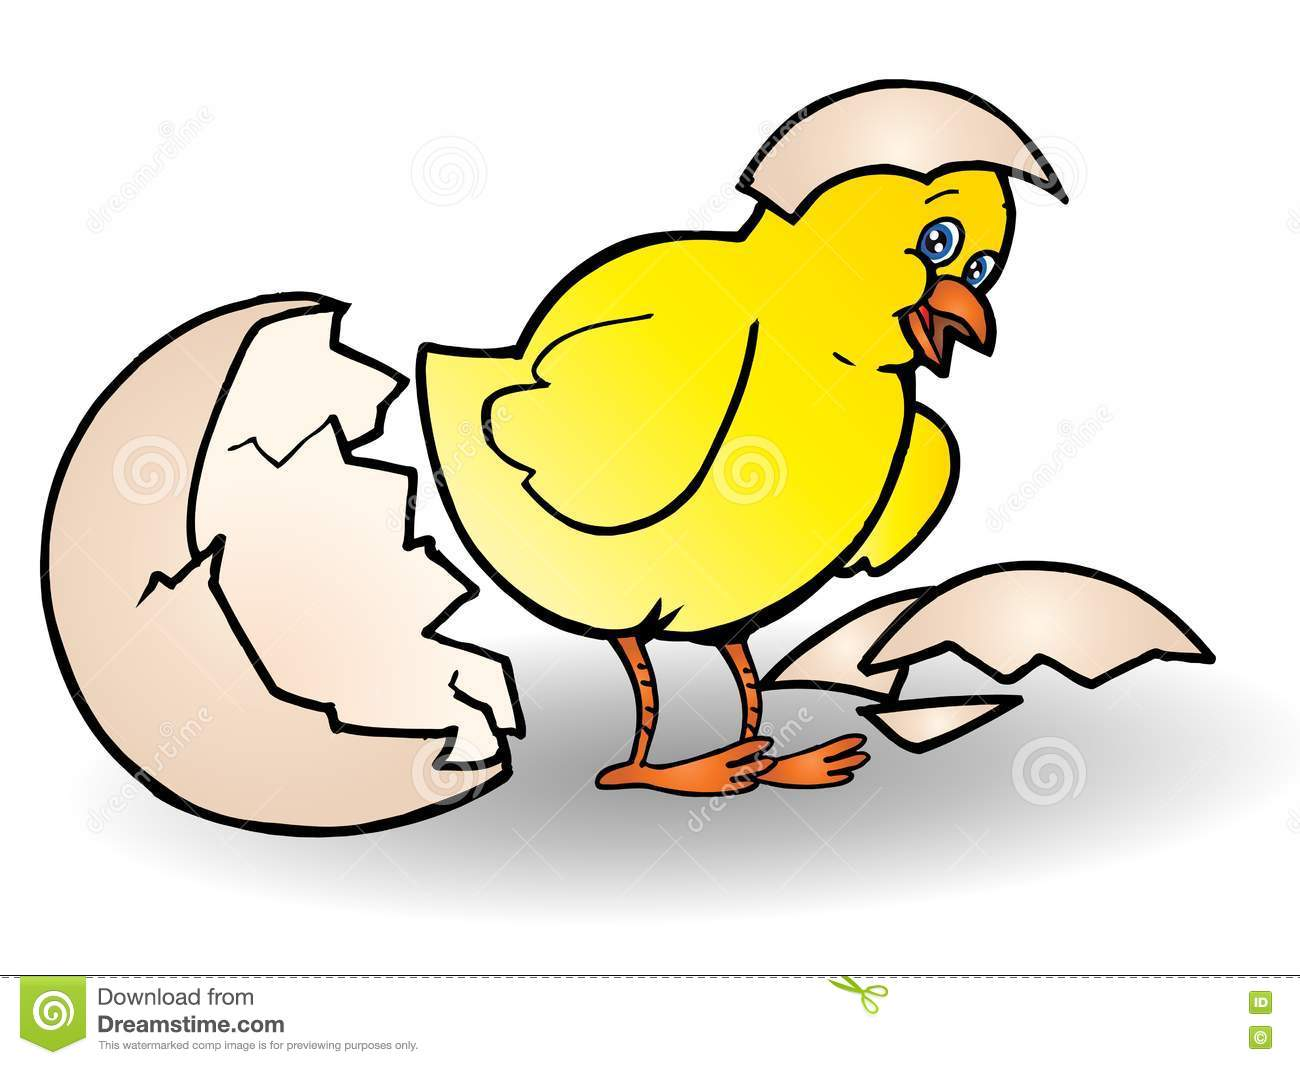 Chick Hatching Stock Photography - Image: 13756482: www.dreamstime.com/stock-photography-chick-hatching-image13756482